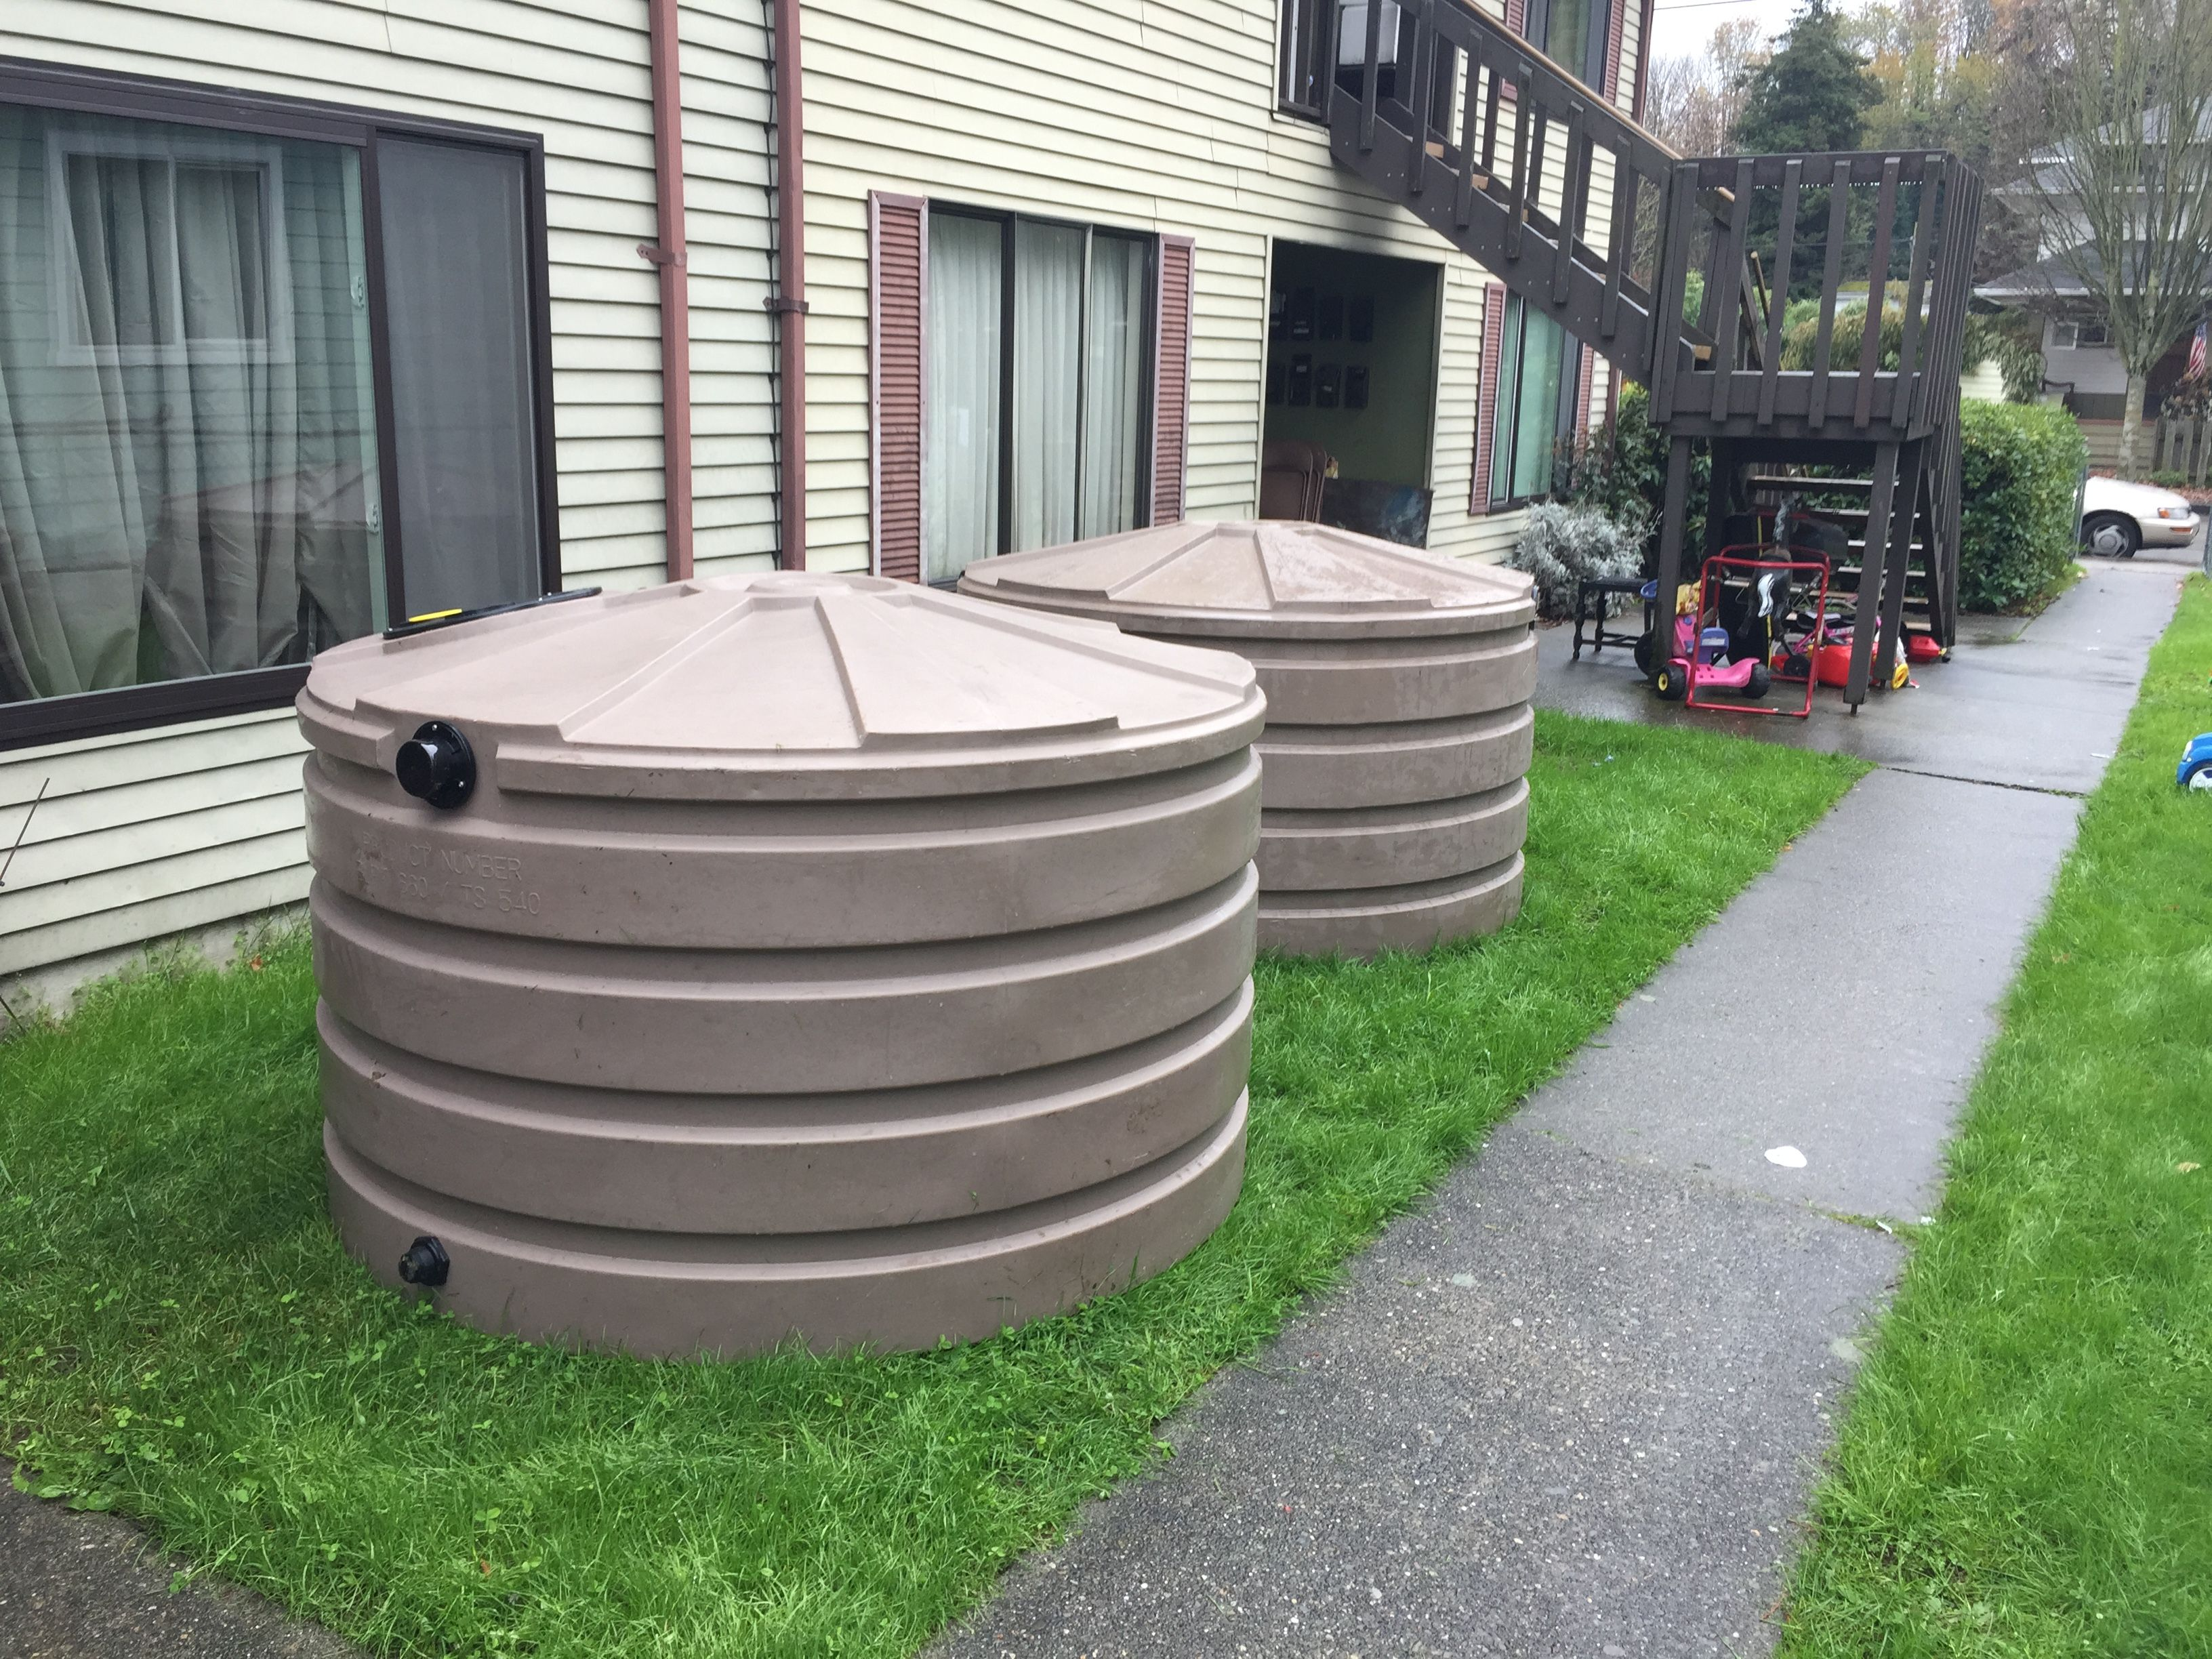 660 gallon round tanks - low profile can fit under a deck